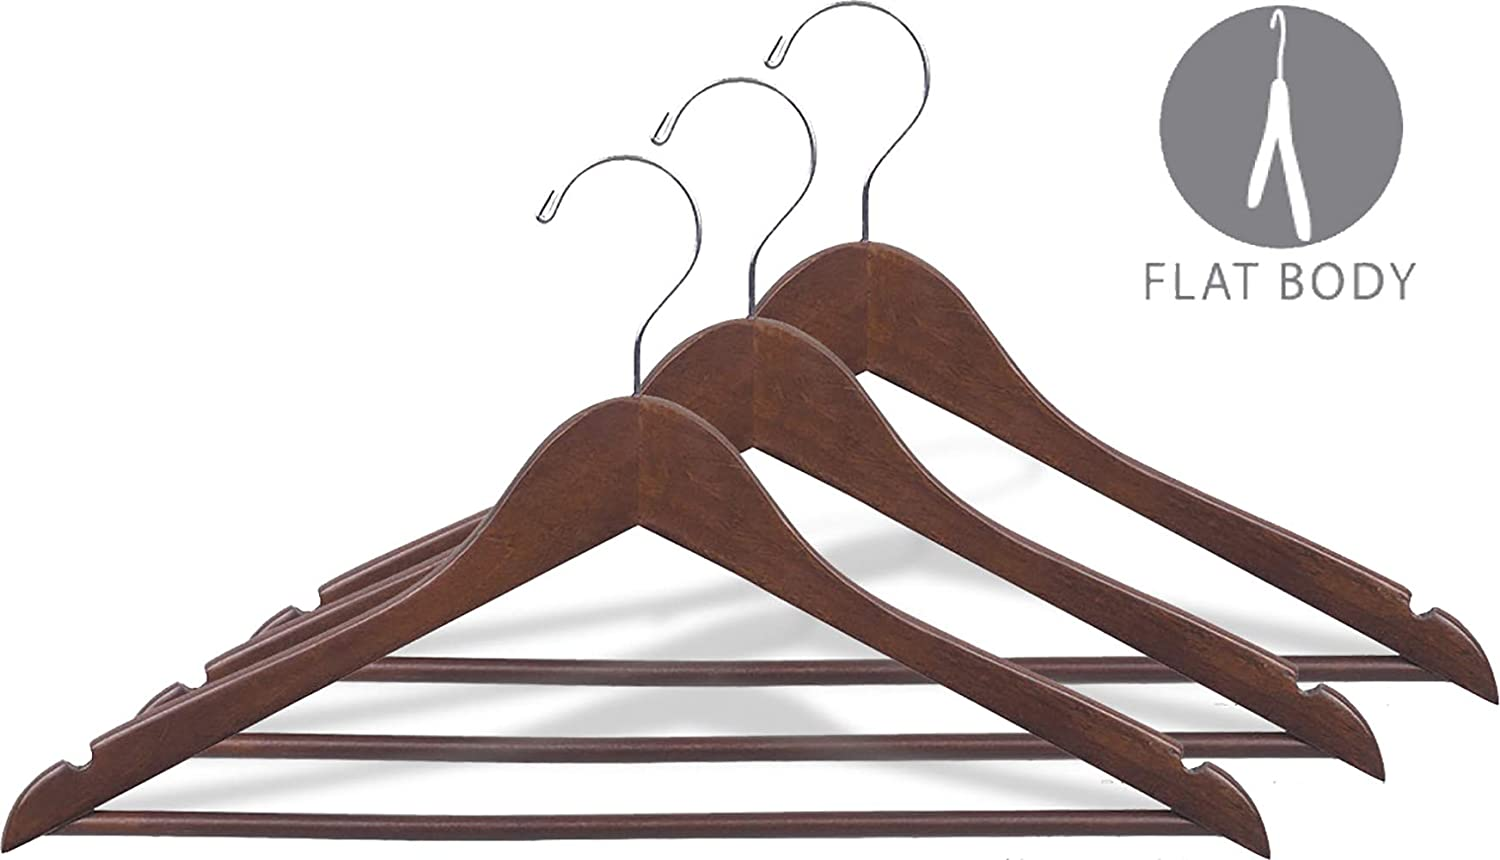 Rubberized Wooden Suit Hanger with Walnut Finish and Solid Wood Bar 17 Inch Flat Rubber Coated Hangers with Chrome Hook /& Notches Set of 100 by The Great American Hanger Company 250122-100